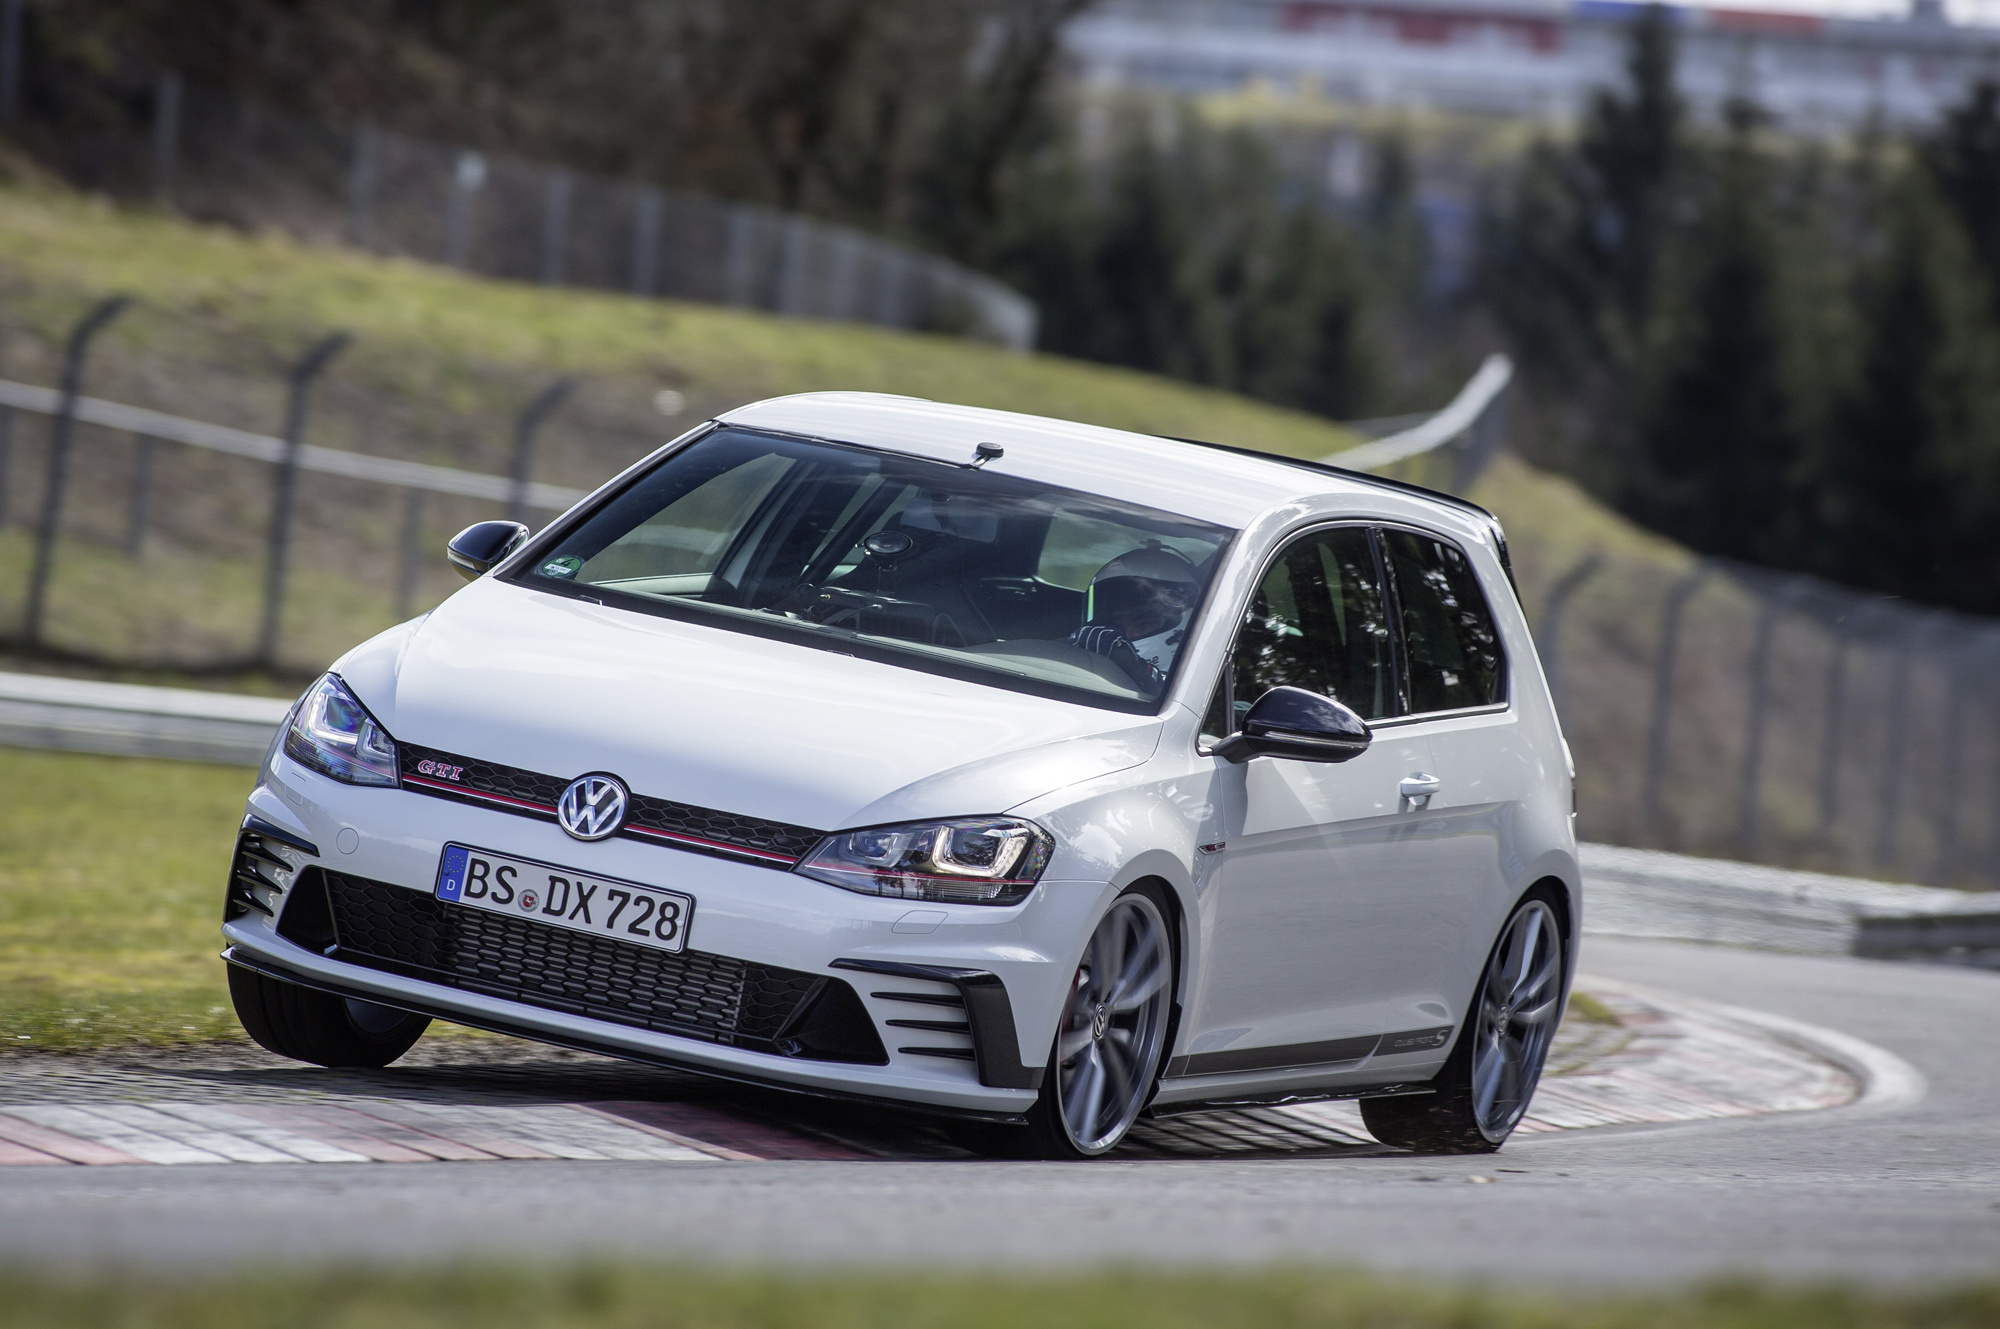 Volkswagen Golf GTI Clubsport S Images